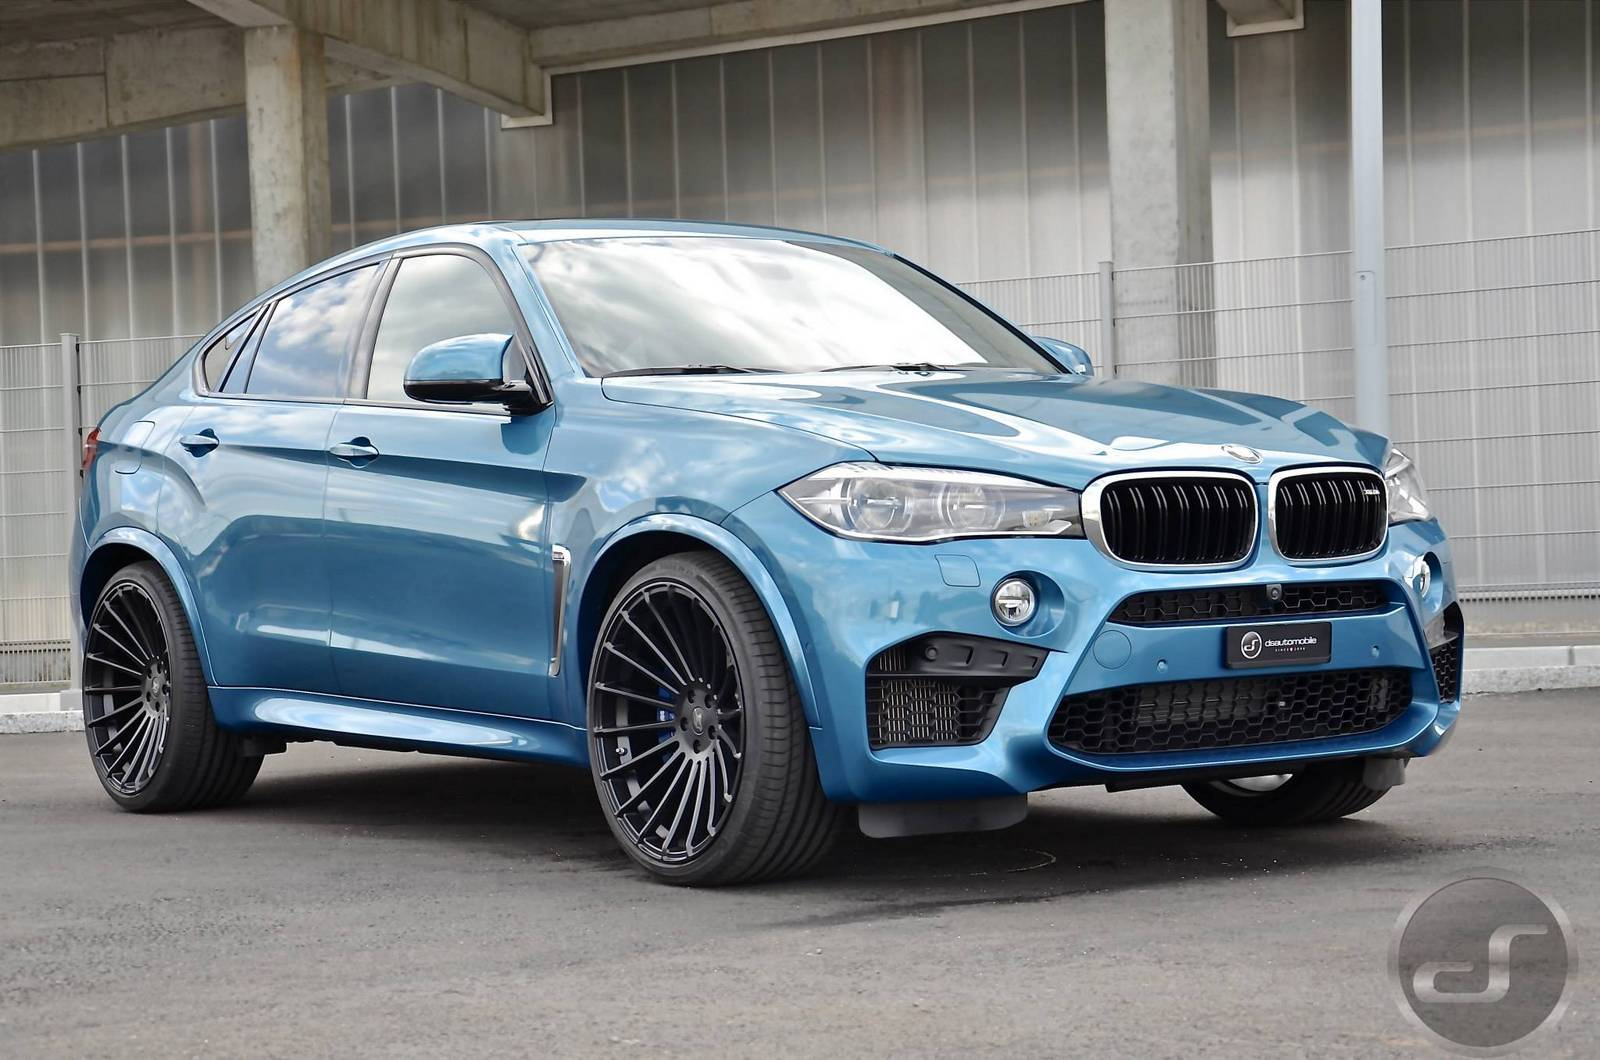 Tuner Car Wallpaper Hd Long Beach Blue Hamann Bmw X6 M By Ds Gtspirit